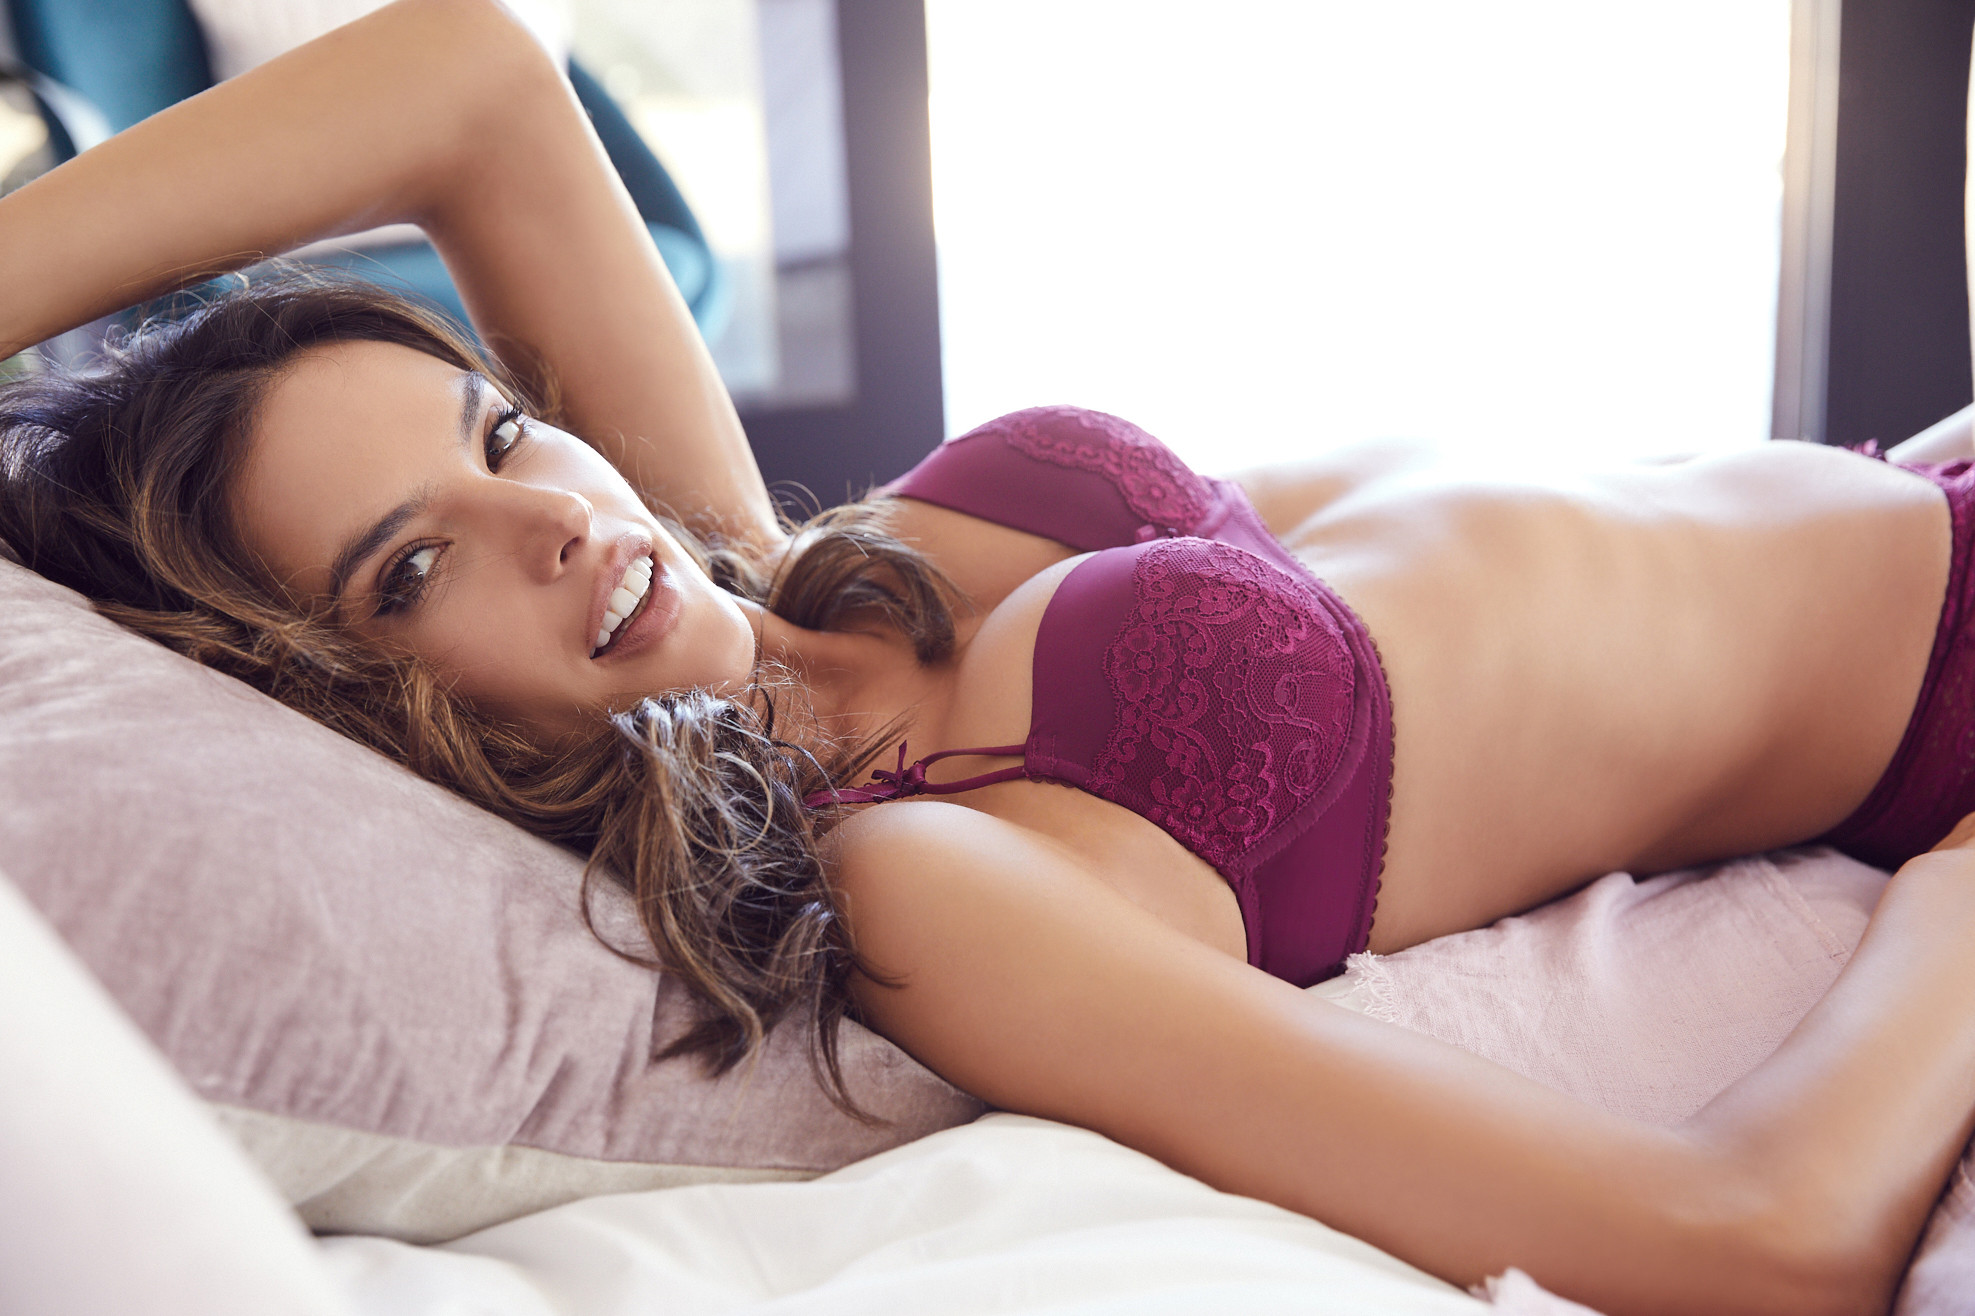 Alessandra Ambrosio - LASCANA Lingerie Photo Shoot - Sexy Actress Pictures | Hot Actress Pictures